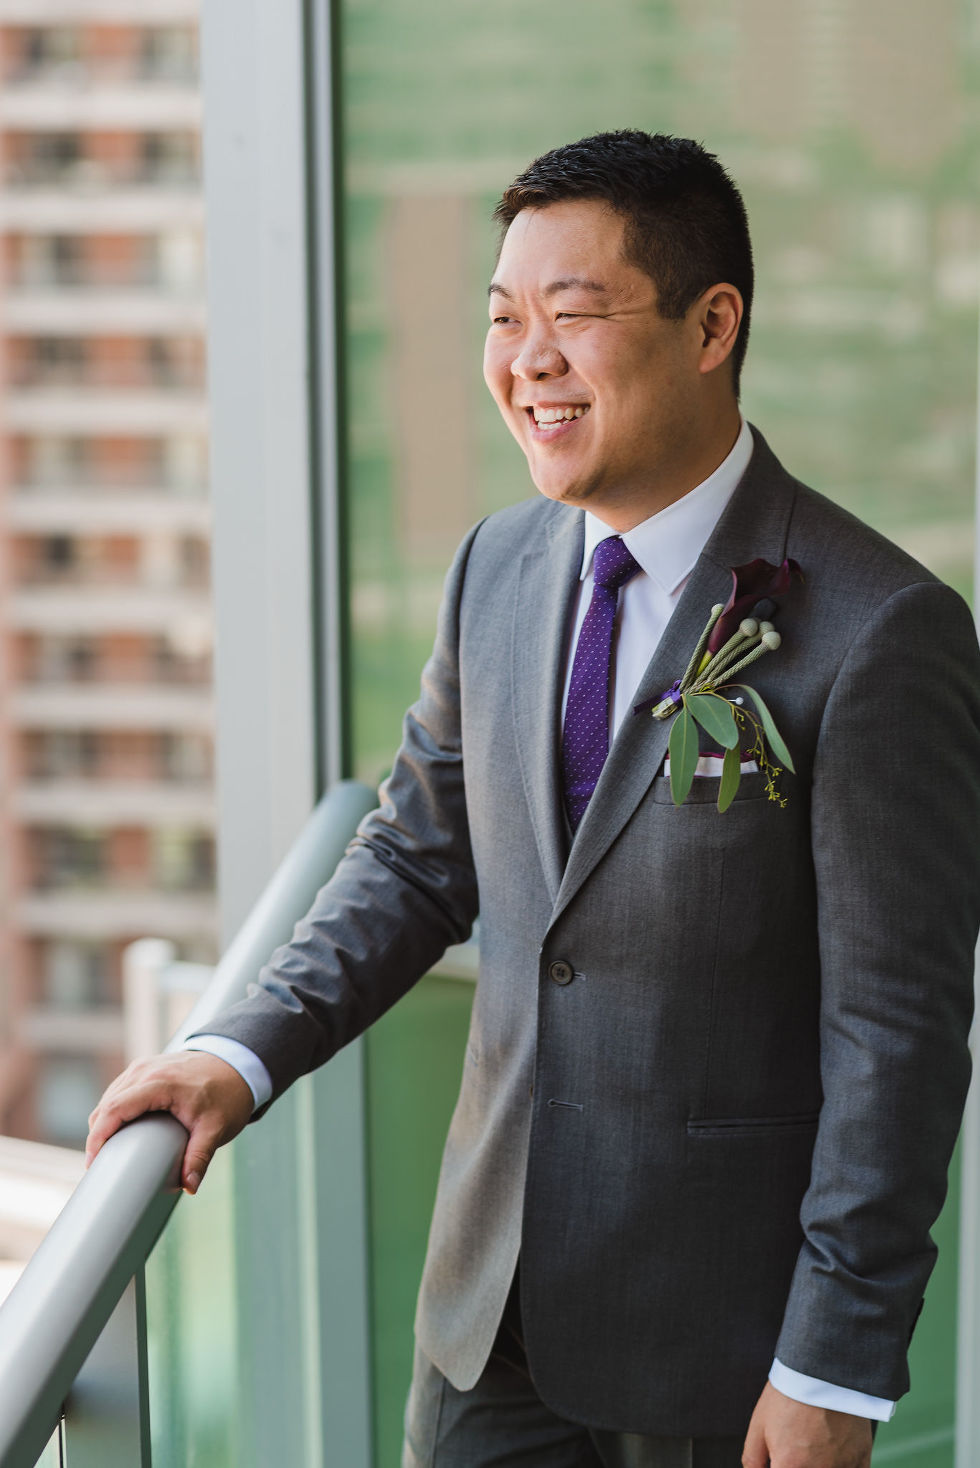 Groom laughing on a condo balcony before his Parisian inspired wedding at La Maquette in Toronto Ontario